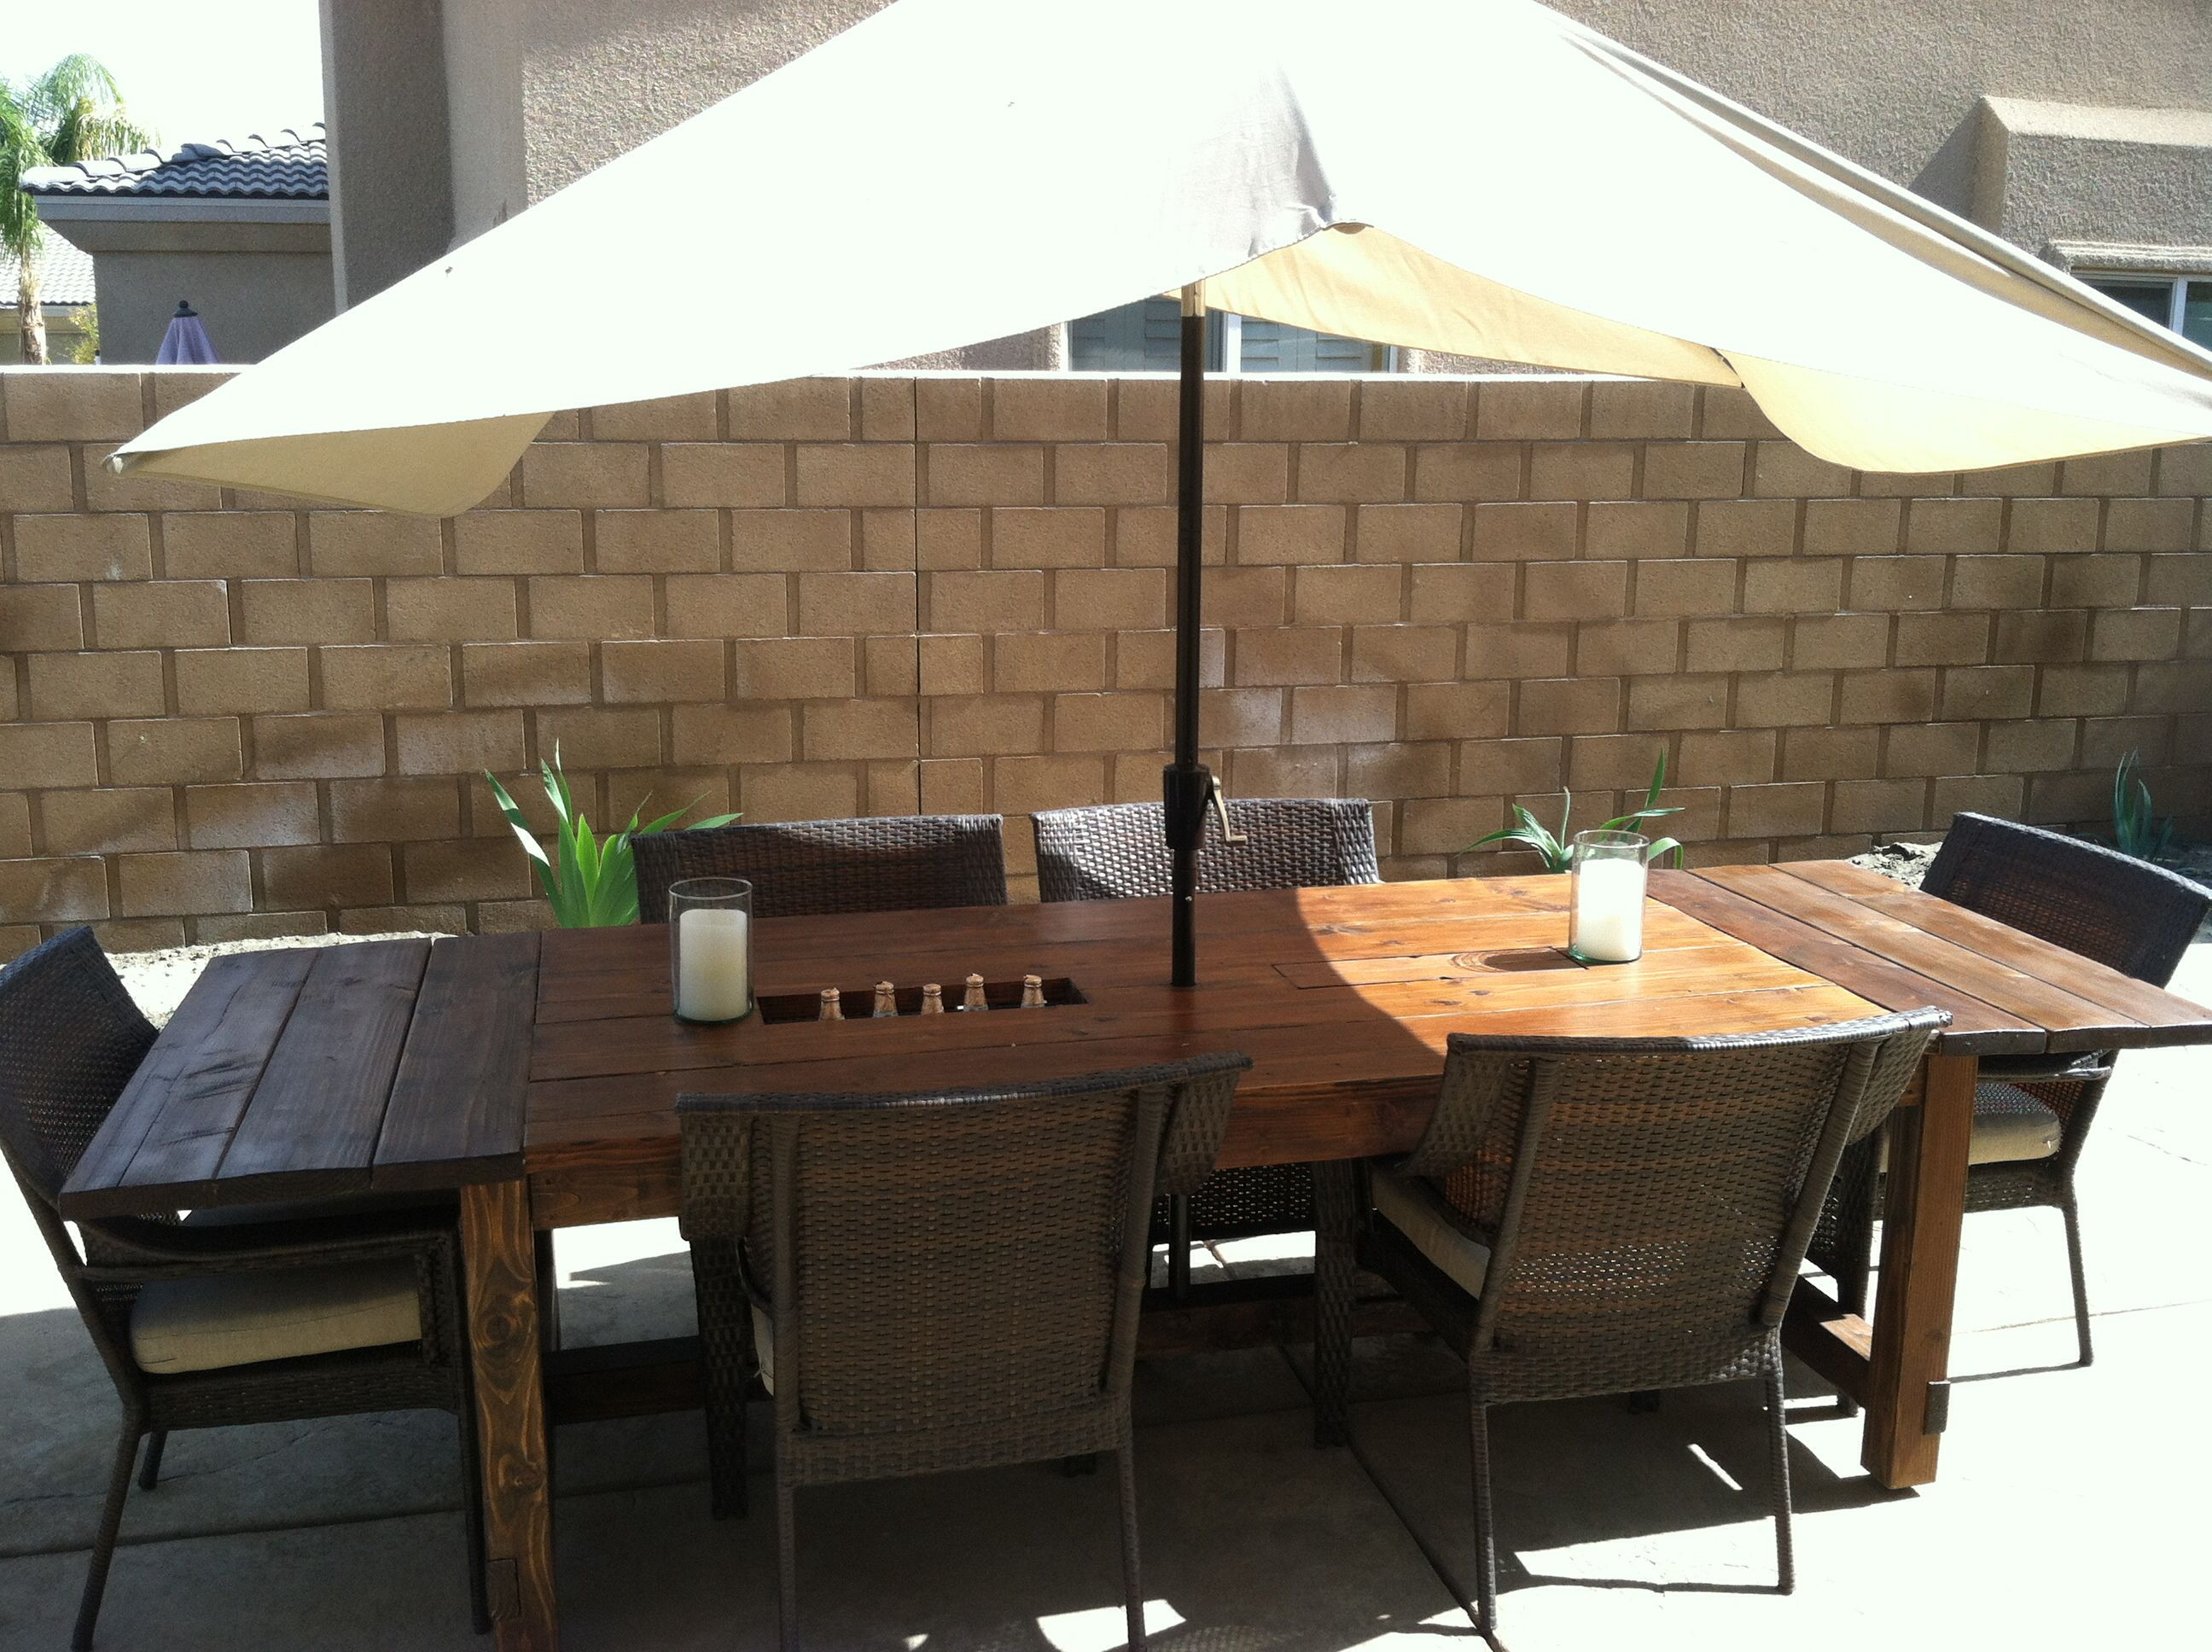 DYI farmhouse table with built in coolers and umbrella stand on